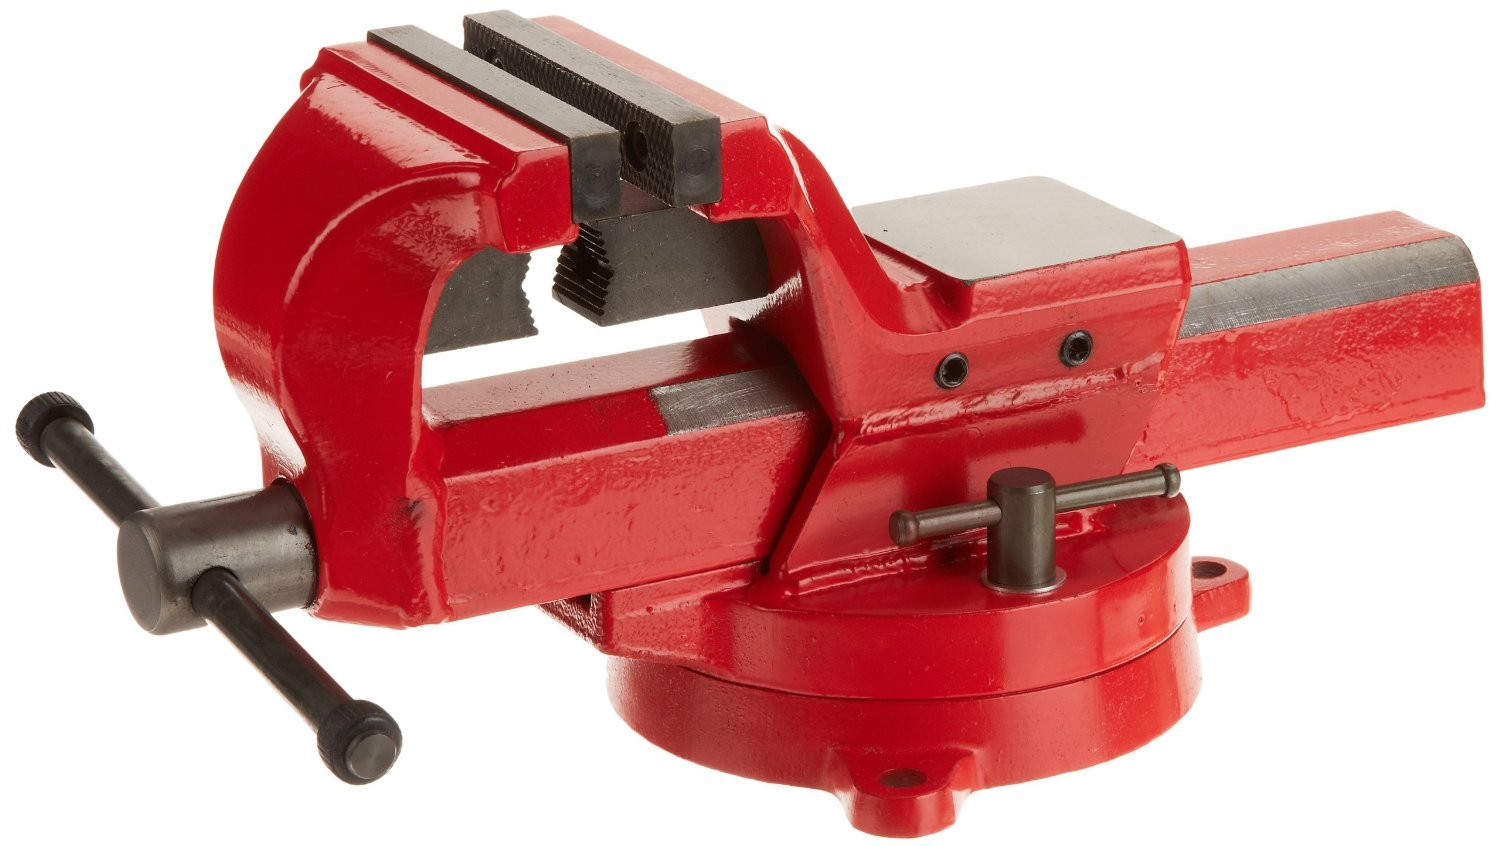 Yost Vises FSV-6 6'' Heavy-Duty Forged Steel Bench Vise with 360-Degree Swivel Base